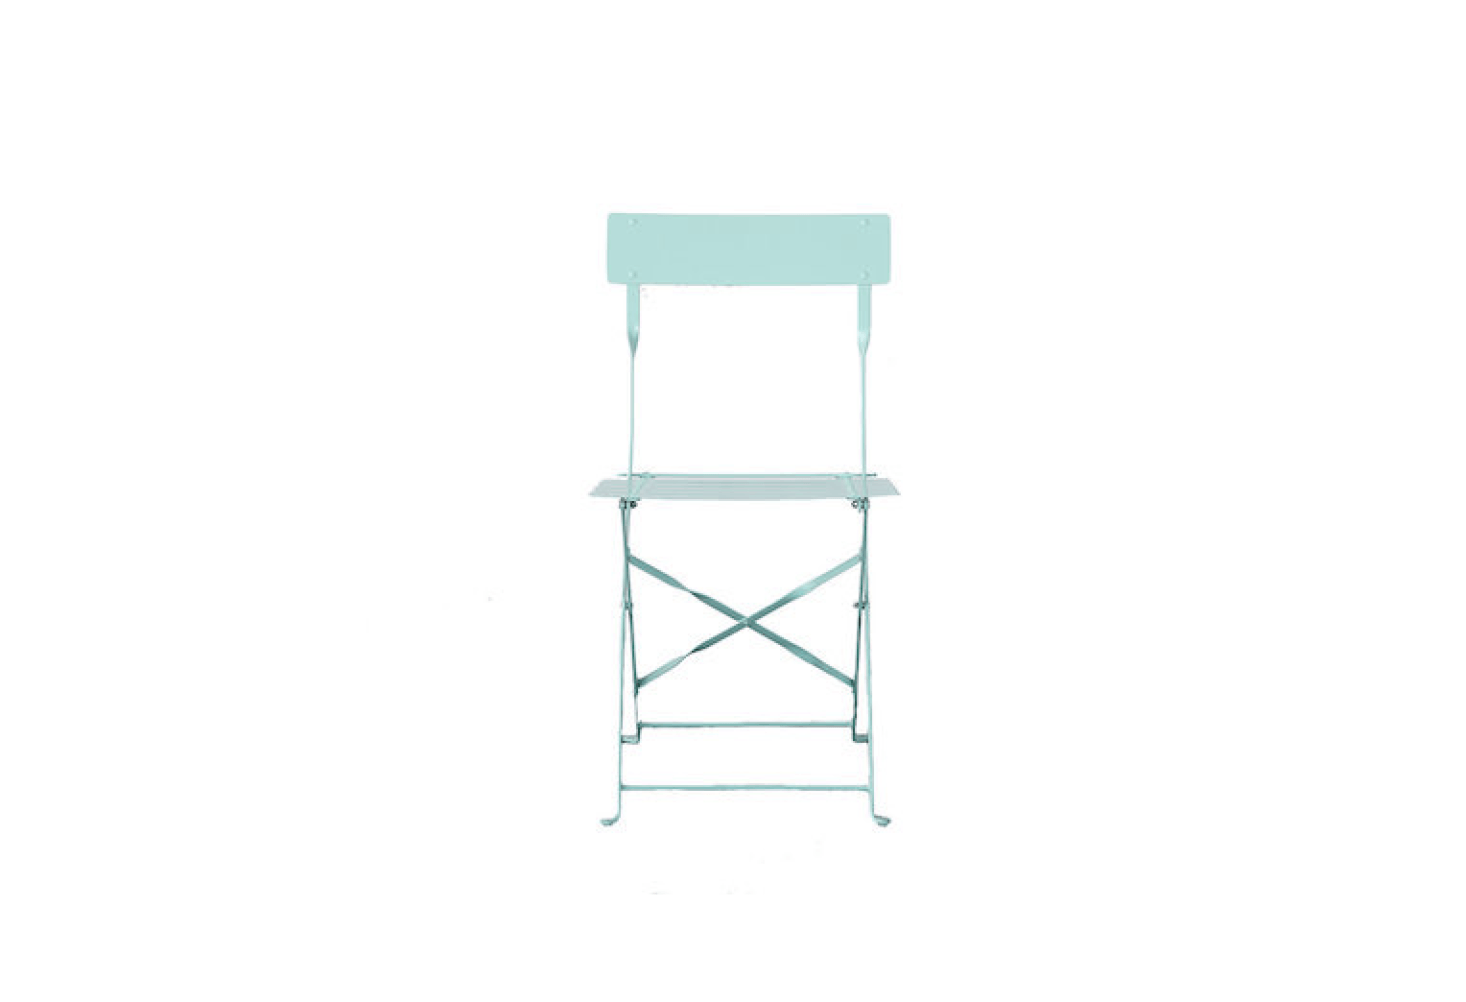 Pleasant 10 Easy Pieces Outdoor Dining Chairs In Pastel Colors Machost Co Dining Chair Design Ideas Machostcouk